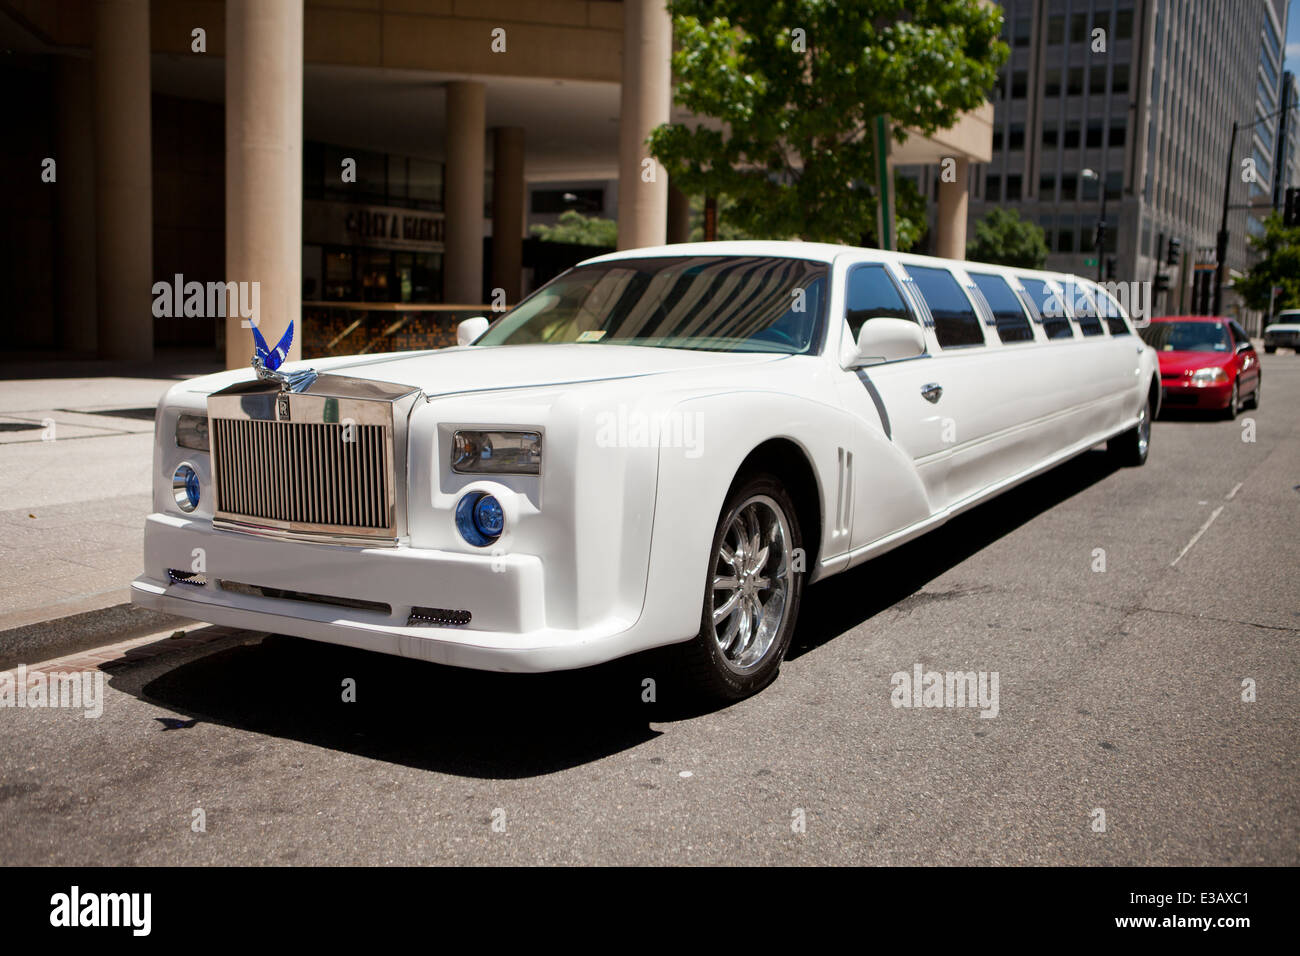 Rolls Royce Stretch Limousine Usa Stock Photo Royalty